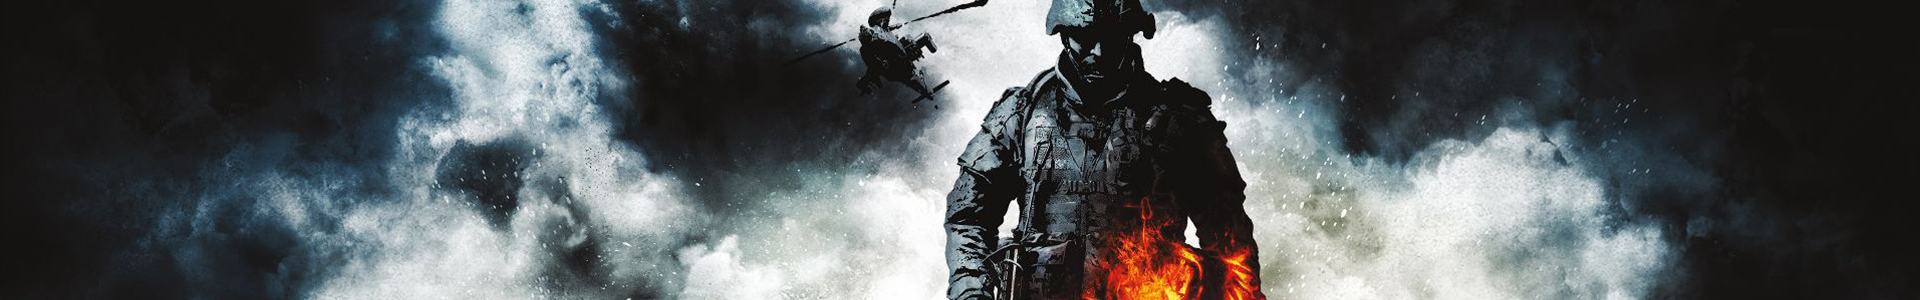 Banner media of Battlefield: Bad Company 2 video game.